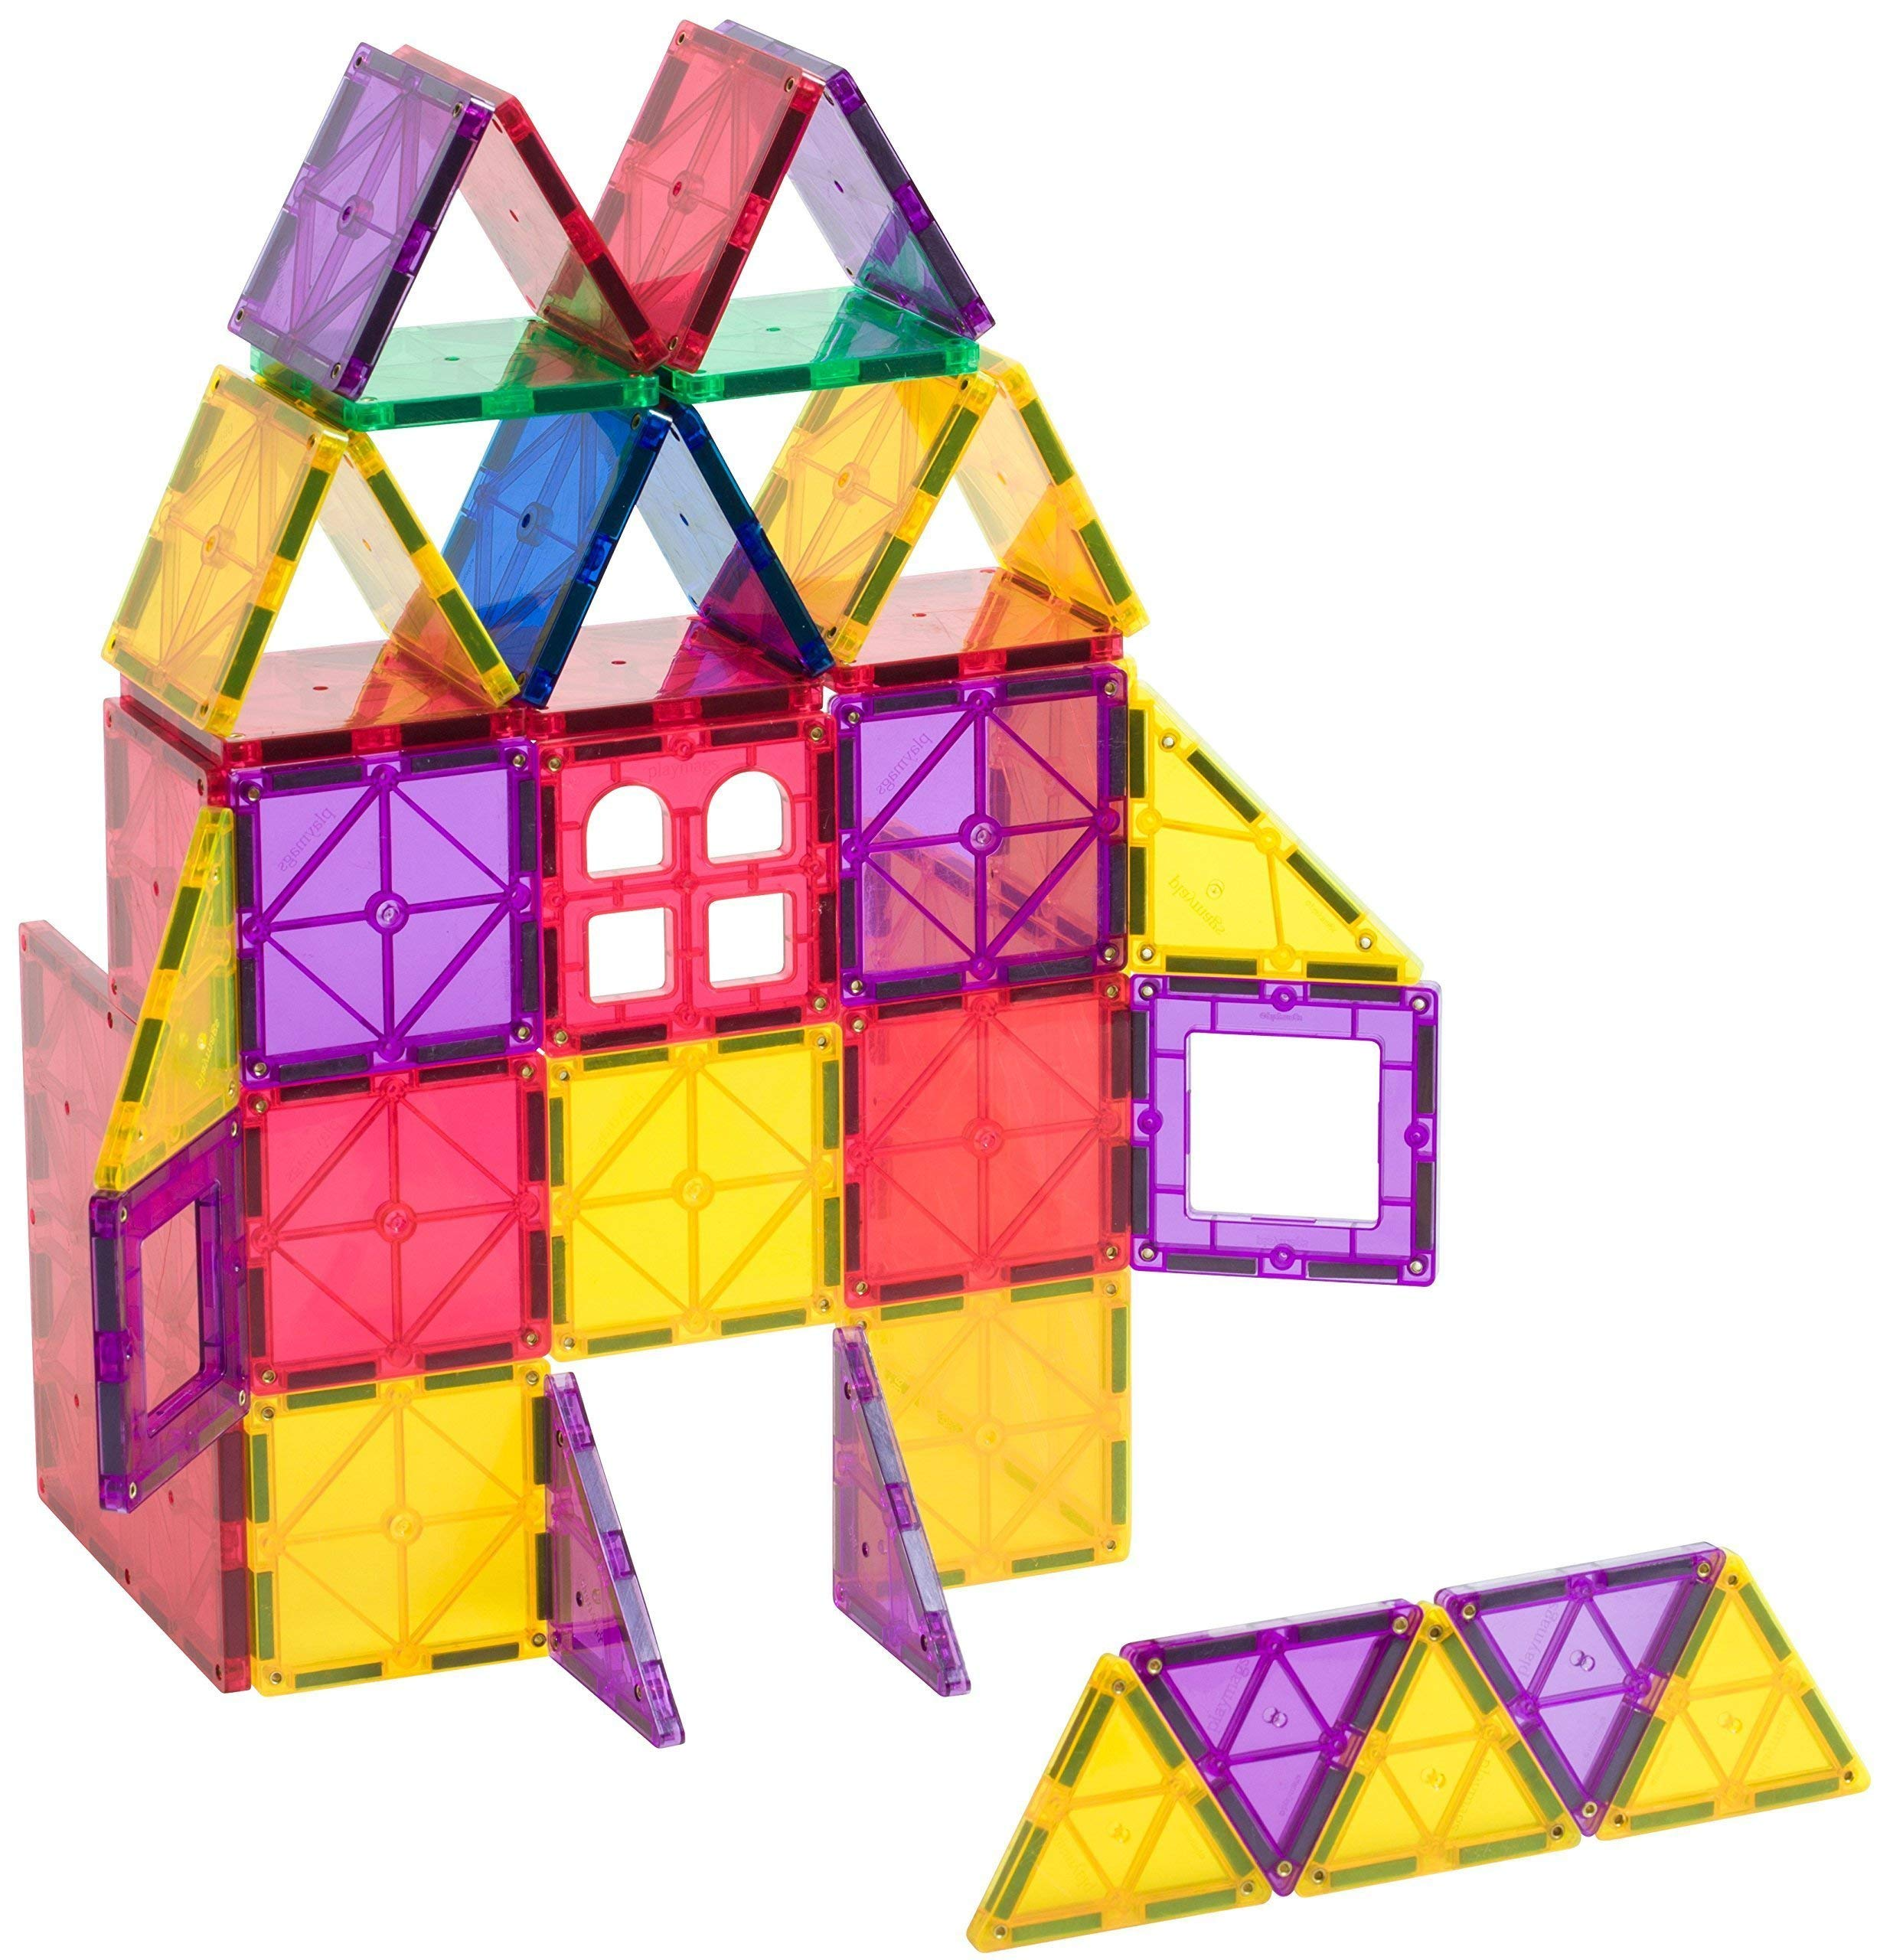 Playmags Clear Colors Magnetic Tiles Building Set 60 Piece Starter Set by Playmags